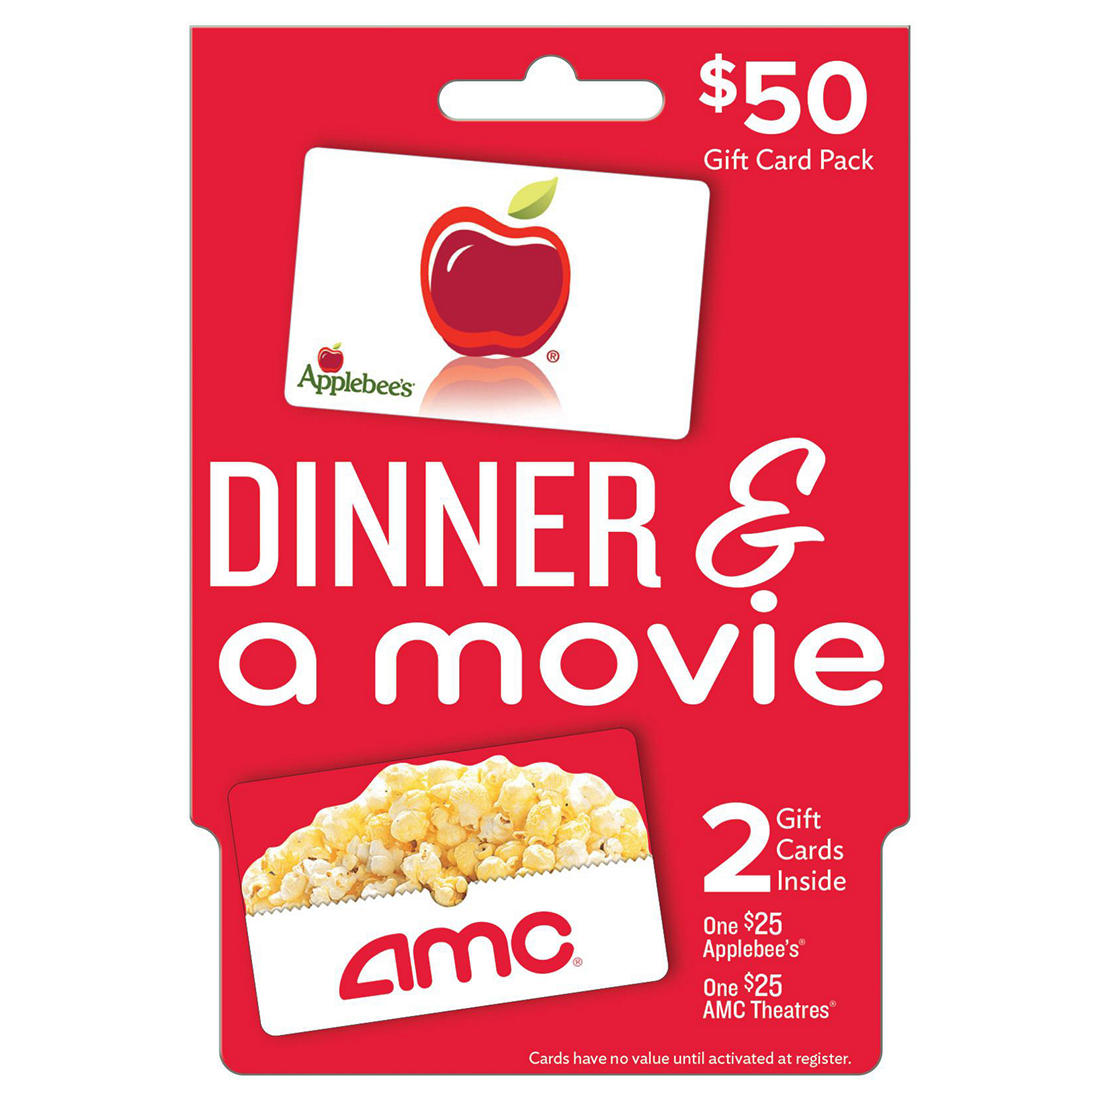 graphic regarding Deal a Meal Cards Printable identify $50 Evening meal and a Video clip Present Card Pack